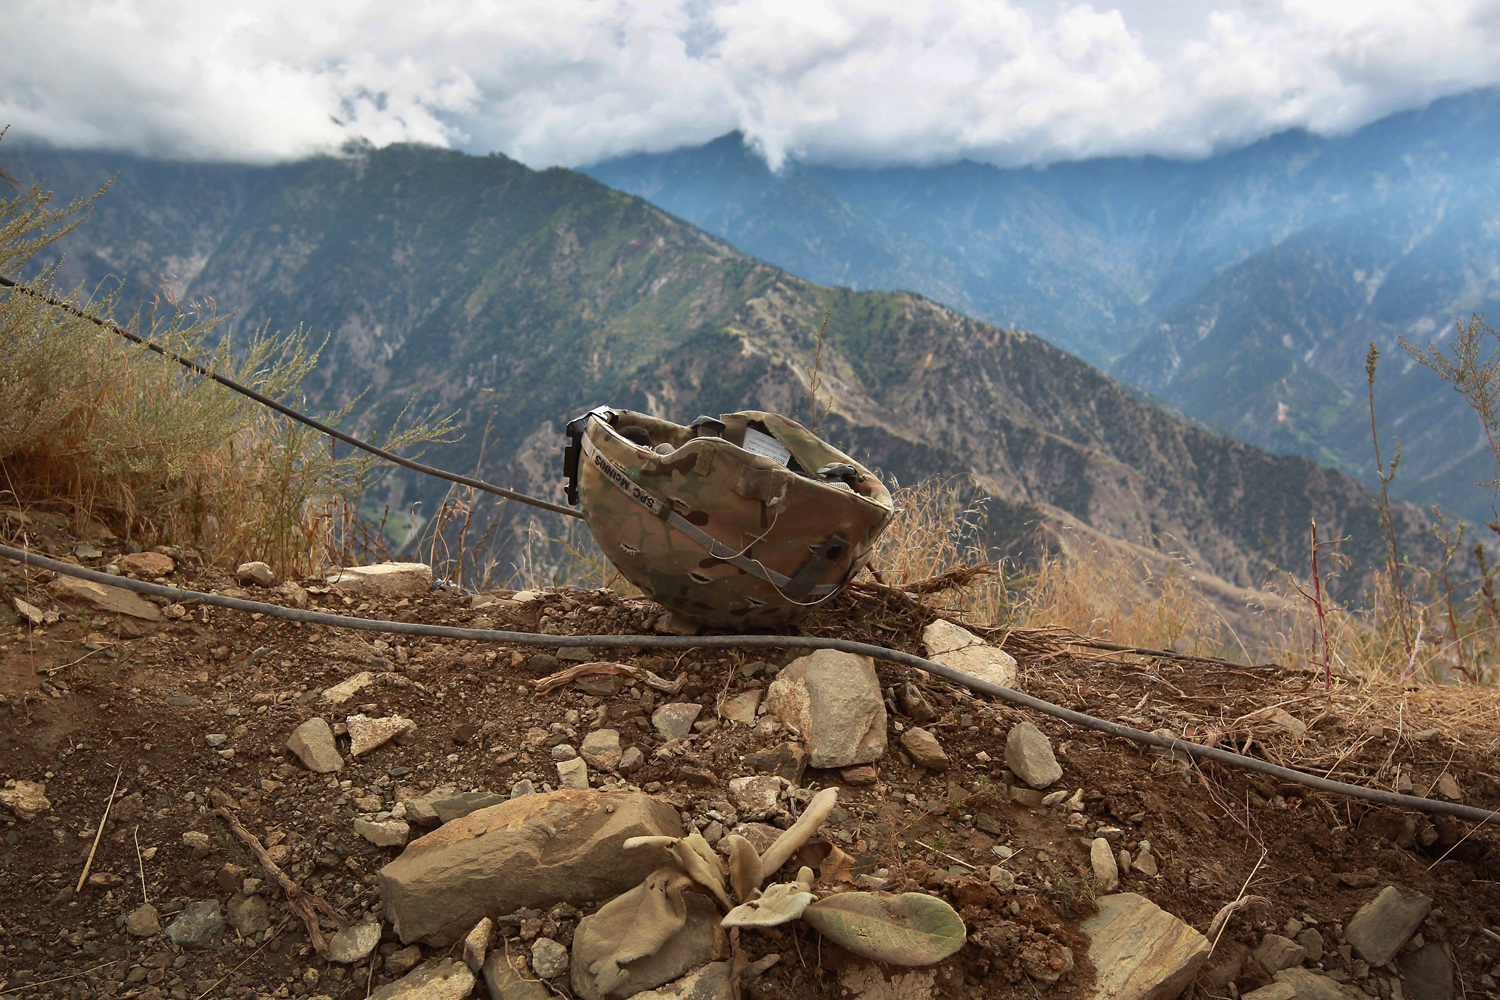 September 2, 2011. A U.S. soldier's helmet lies on a mountaintop position on at Observation Post Mustang in Kunar Province, Afghanistan. The area, in northeastern Afghanistan near the Pakistan border, is a major infiltration route by Taliban fighters coming across from Pakistan and has seen some of the heaviest fighting of the war.